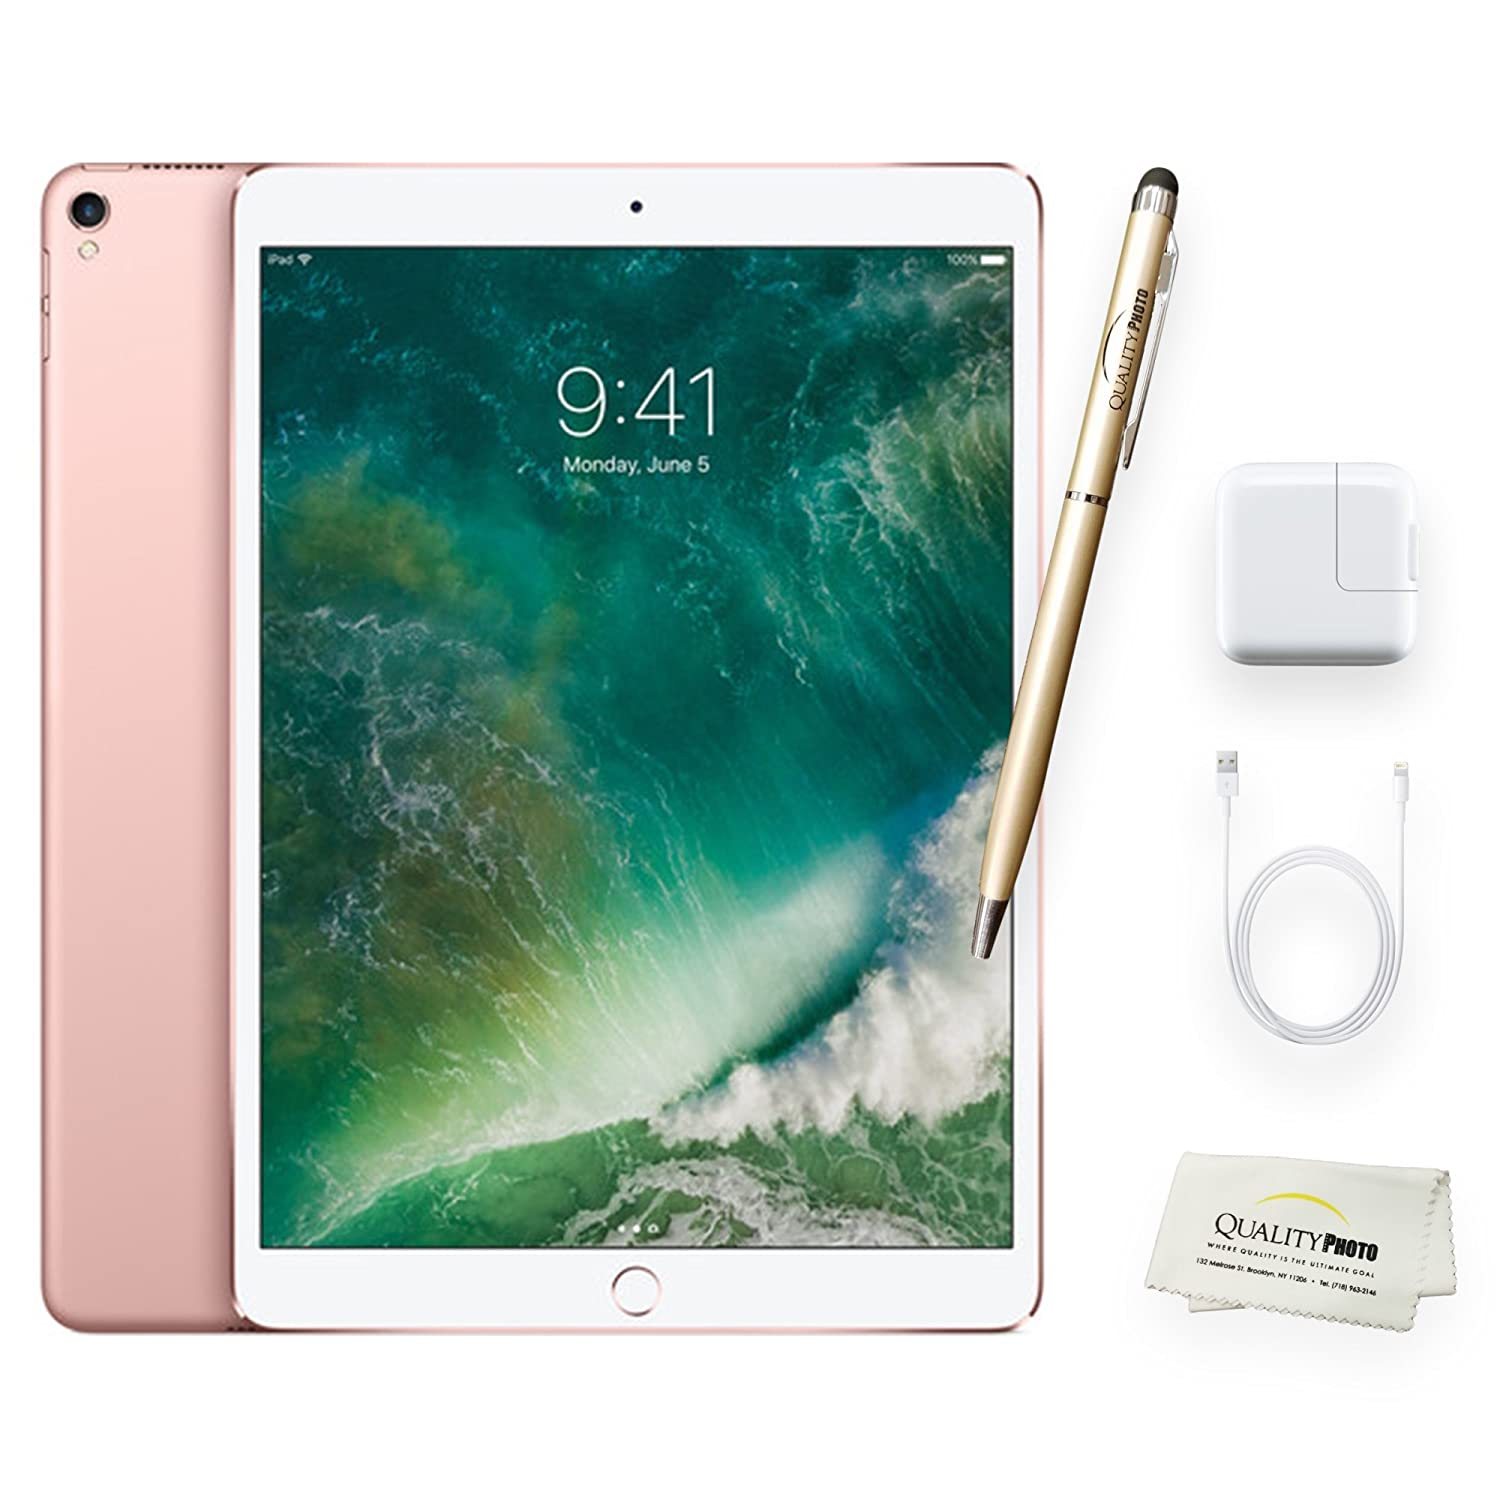 Apple I Pad Pro 10.5 Inch Wi Fi 256 Gb Rose Gold + Quality Photo Accessories (Latest Apple Tablet) 2017 Model.. by Quality Photo